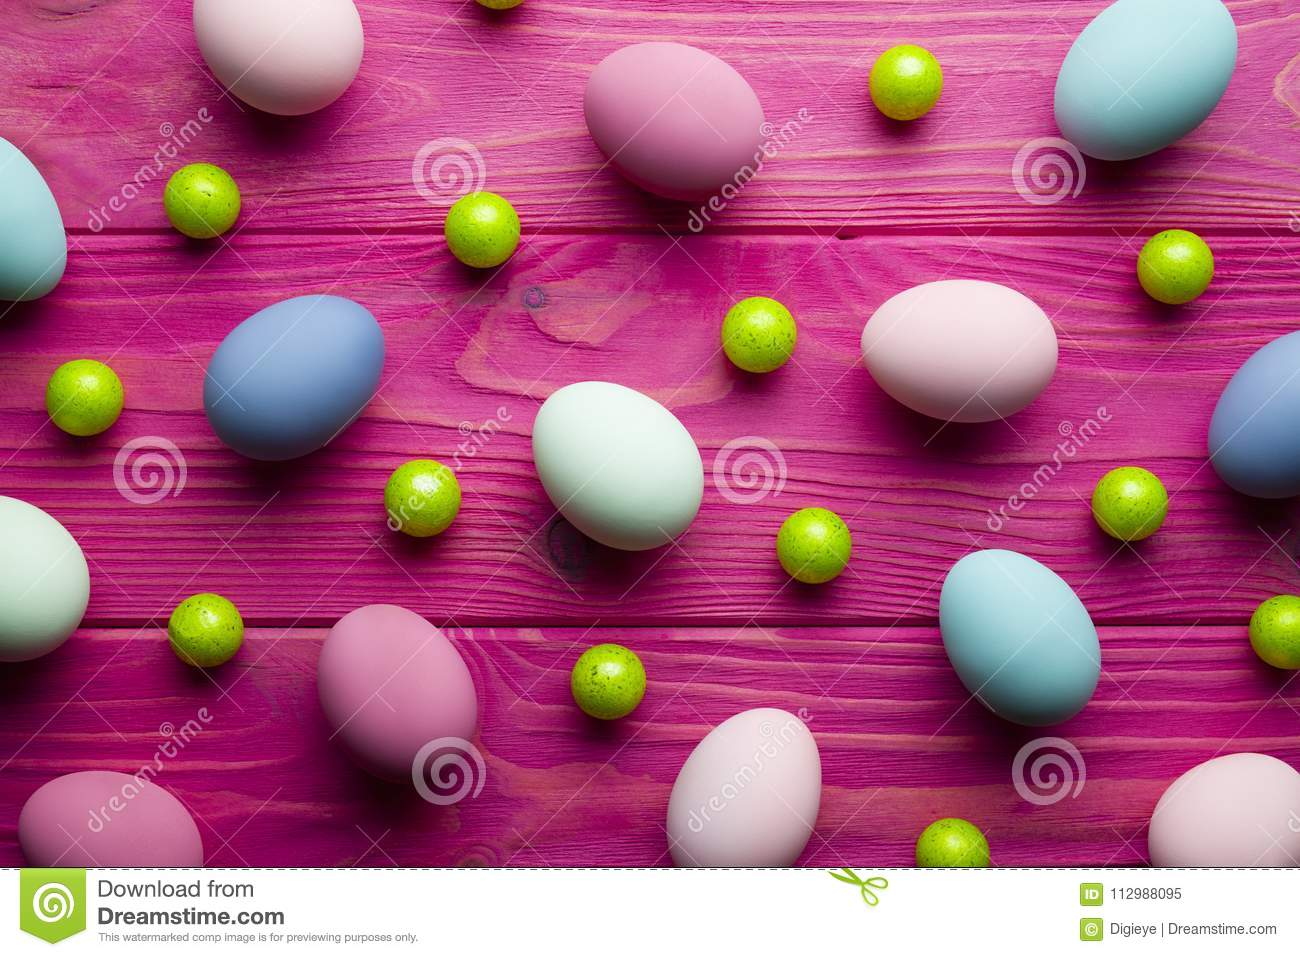 Colored Easter eggs and green balls on wooden background